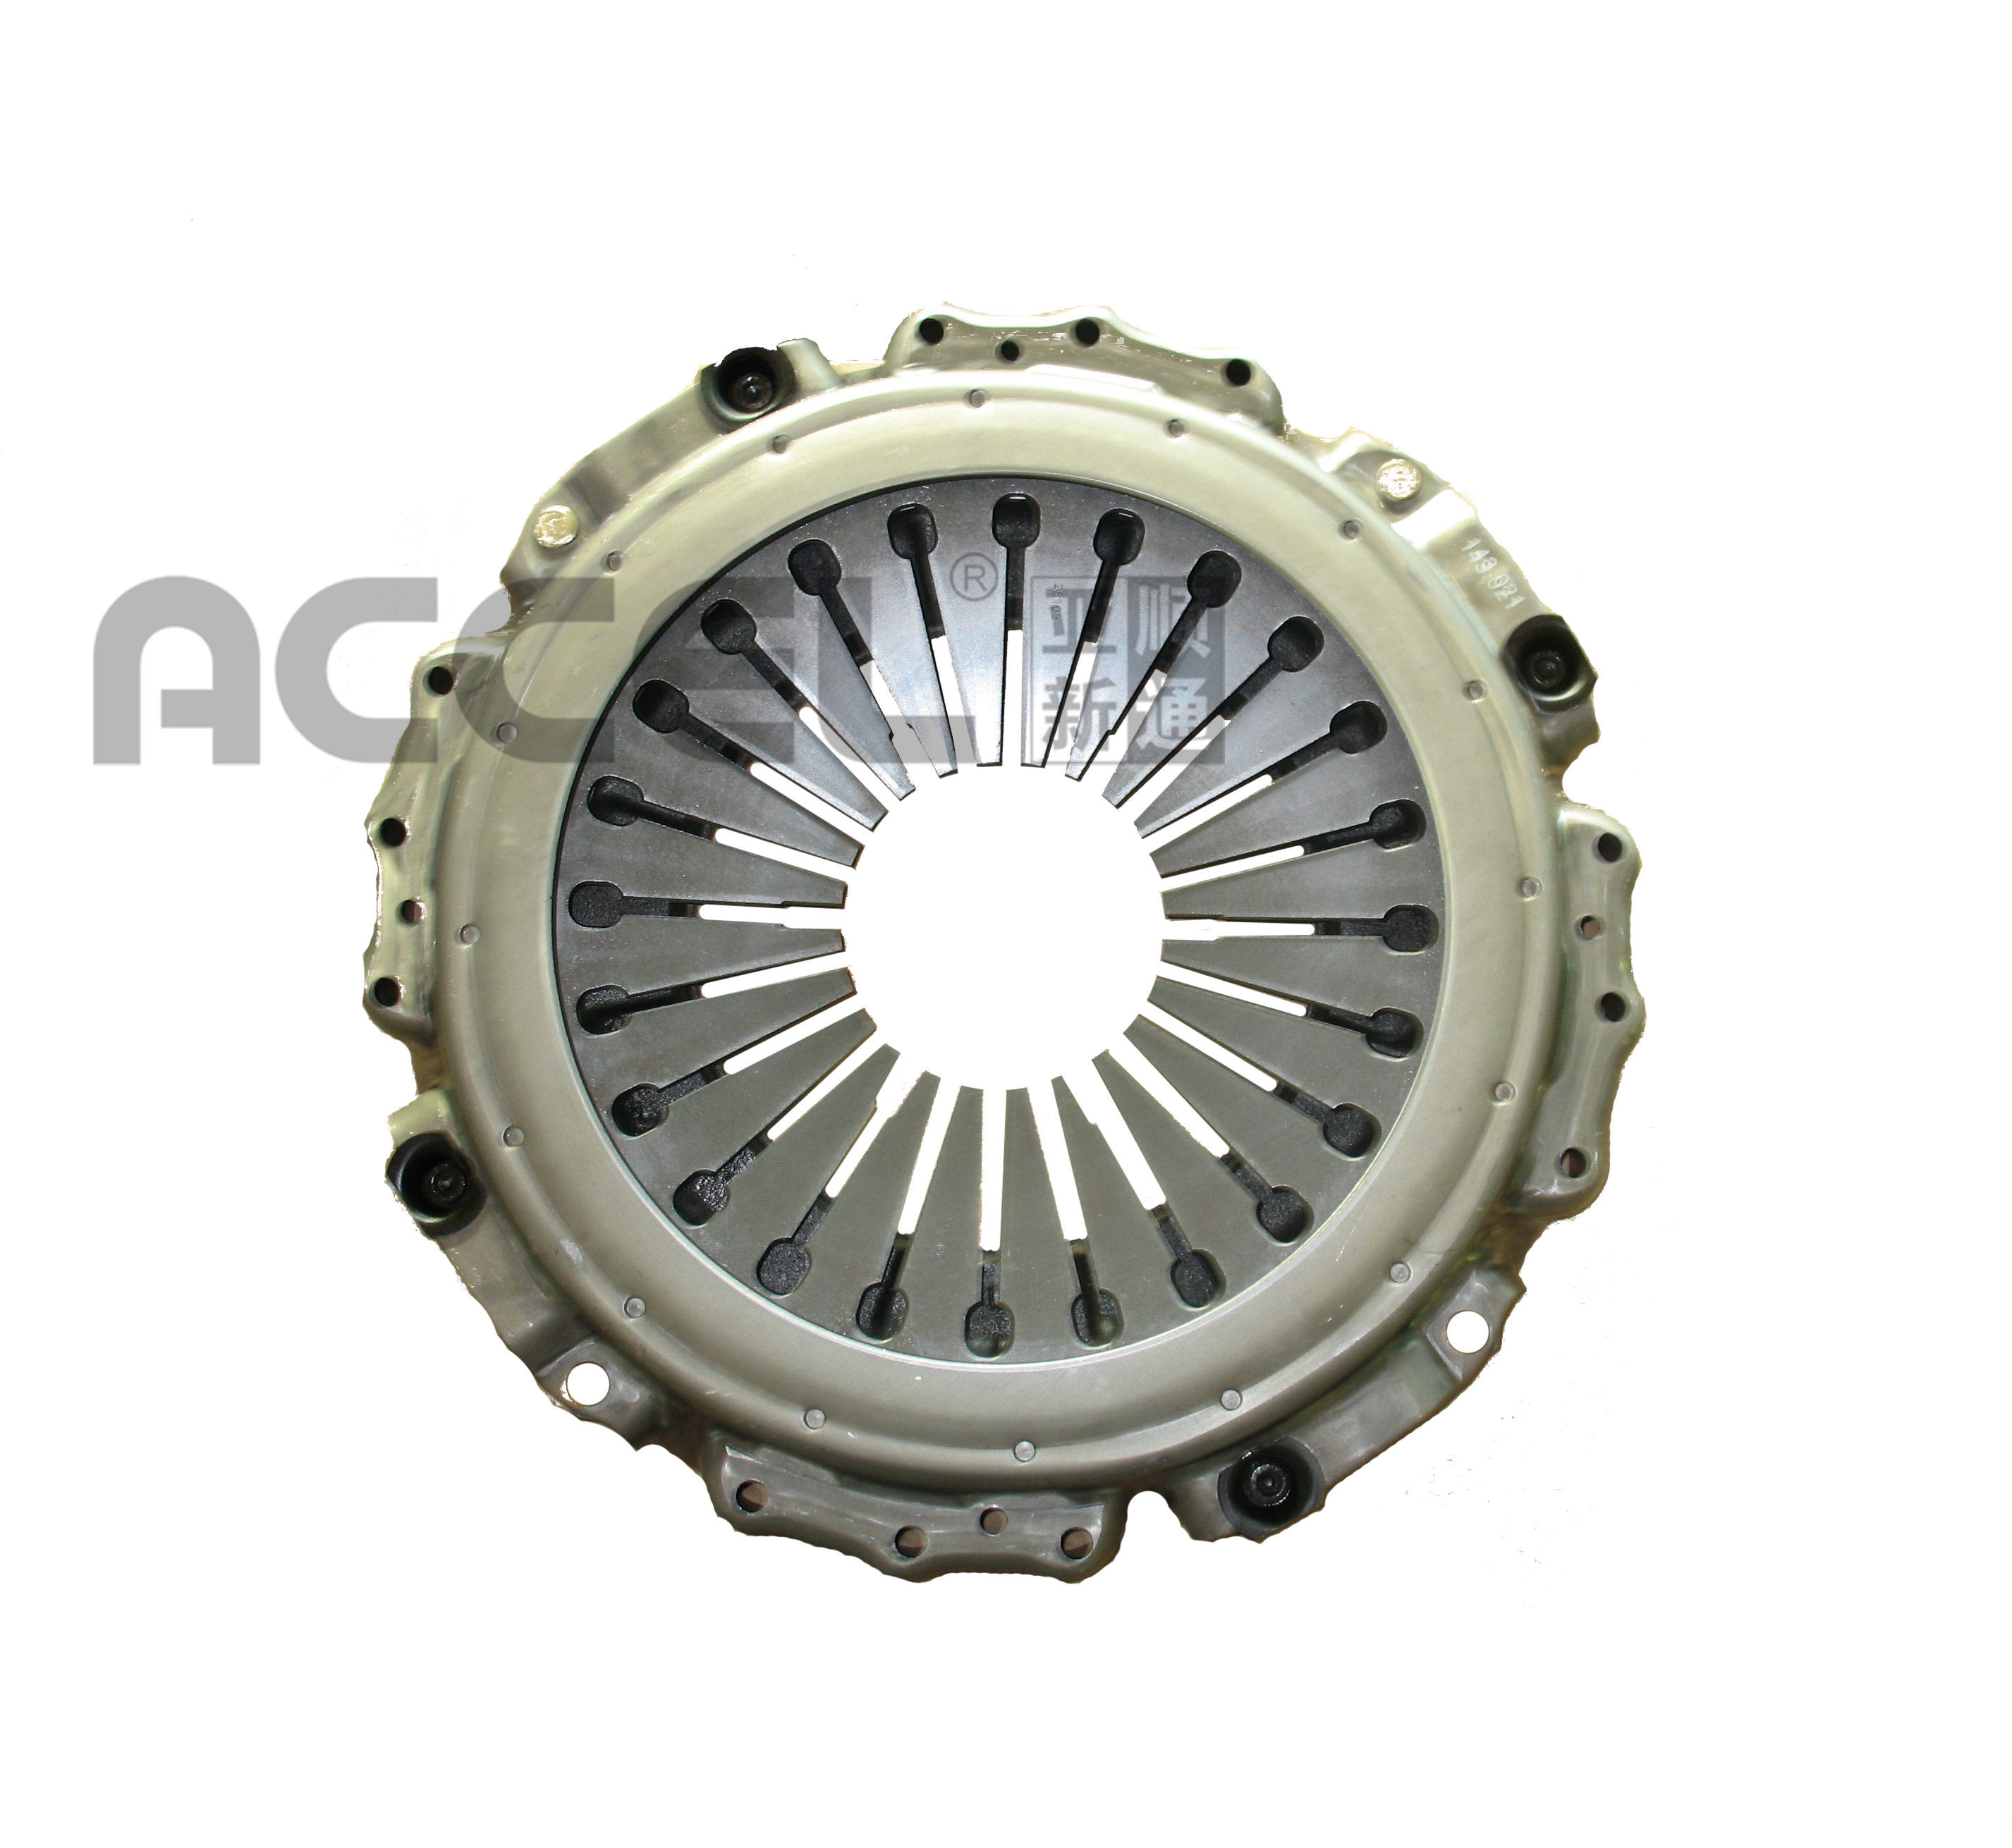 Clutch Cover/OE:NULL/430*235*450/STC-092/OTHERS/LY454